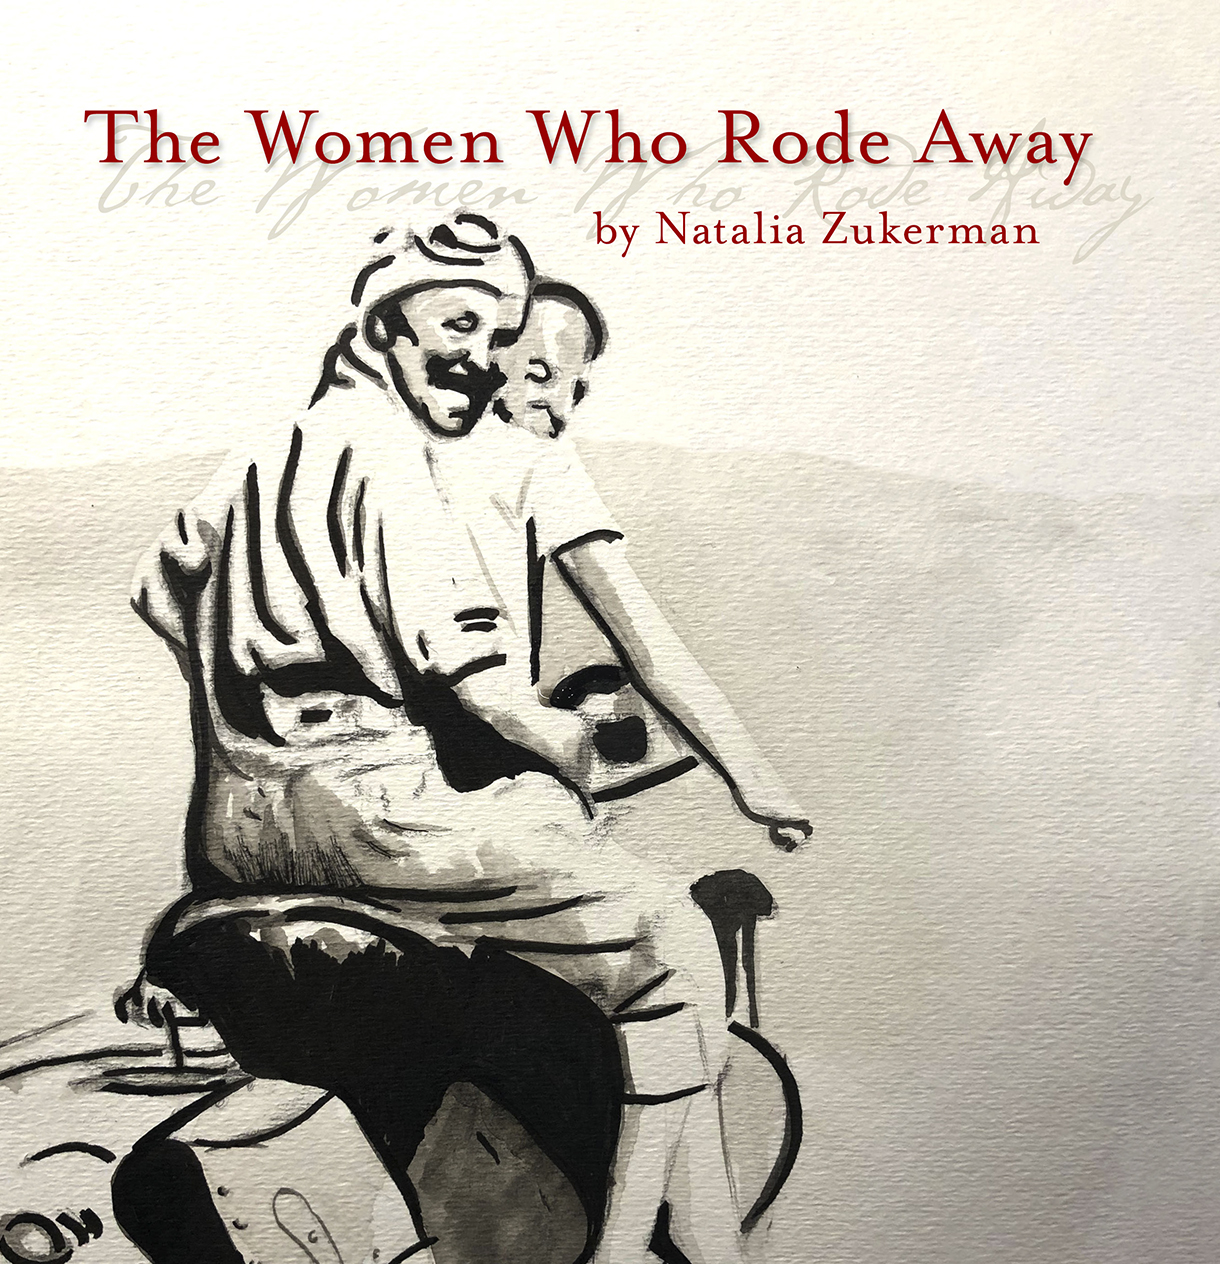 women-who-rode-away-front-cover.jpg